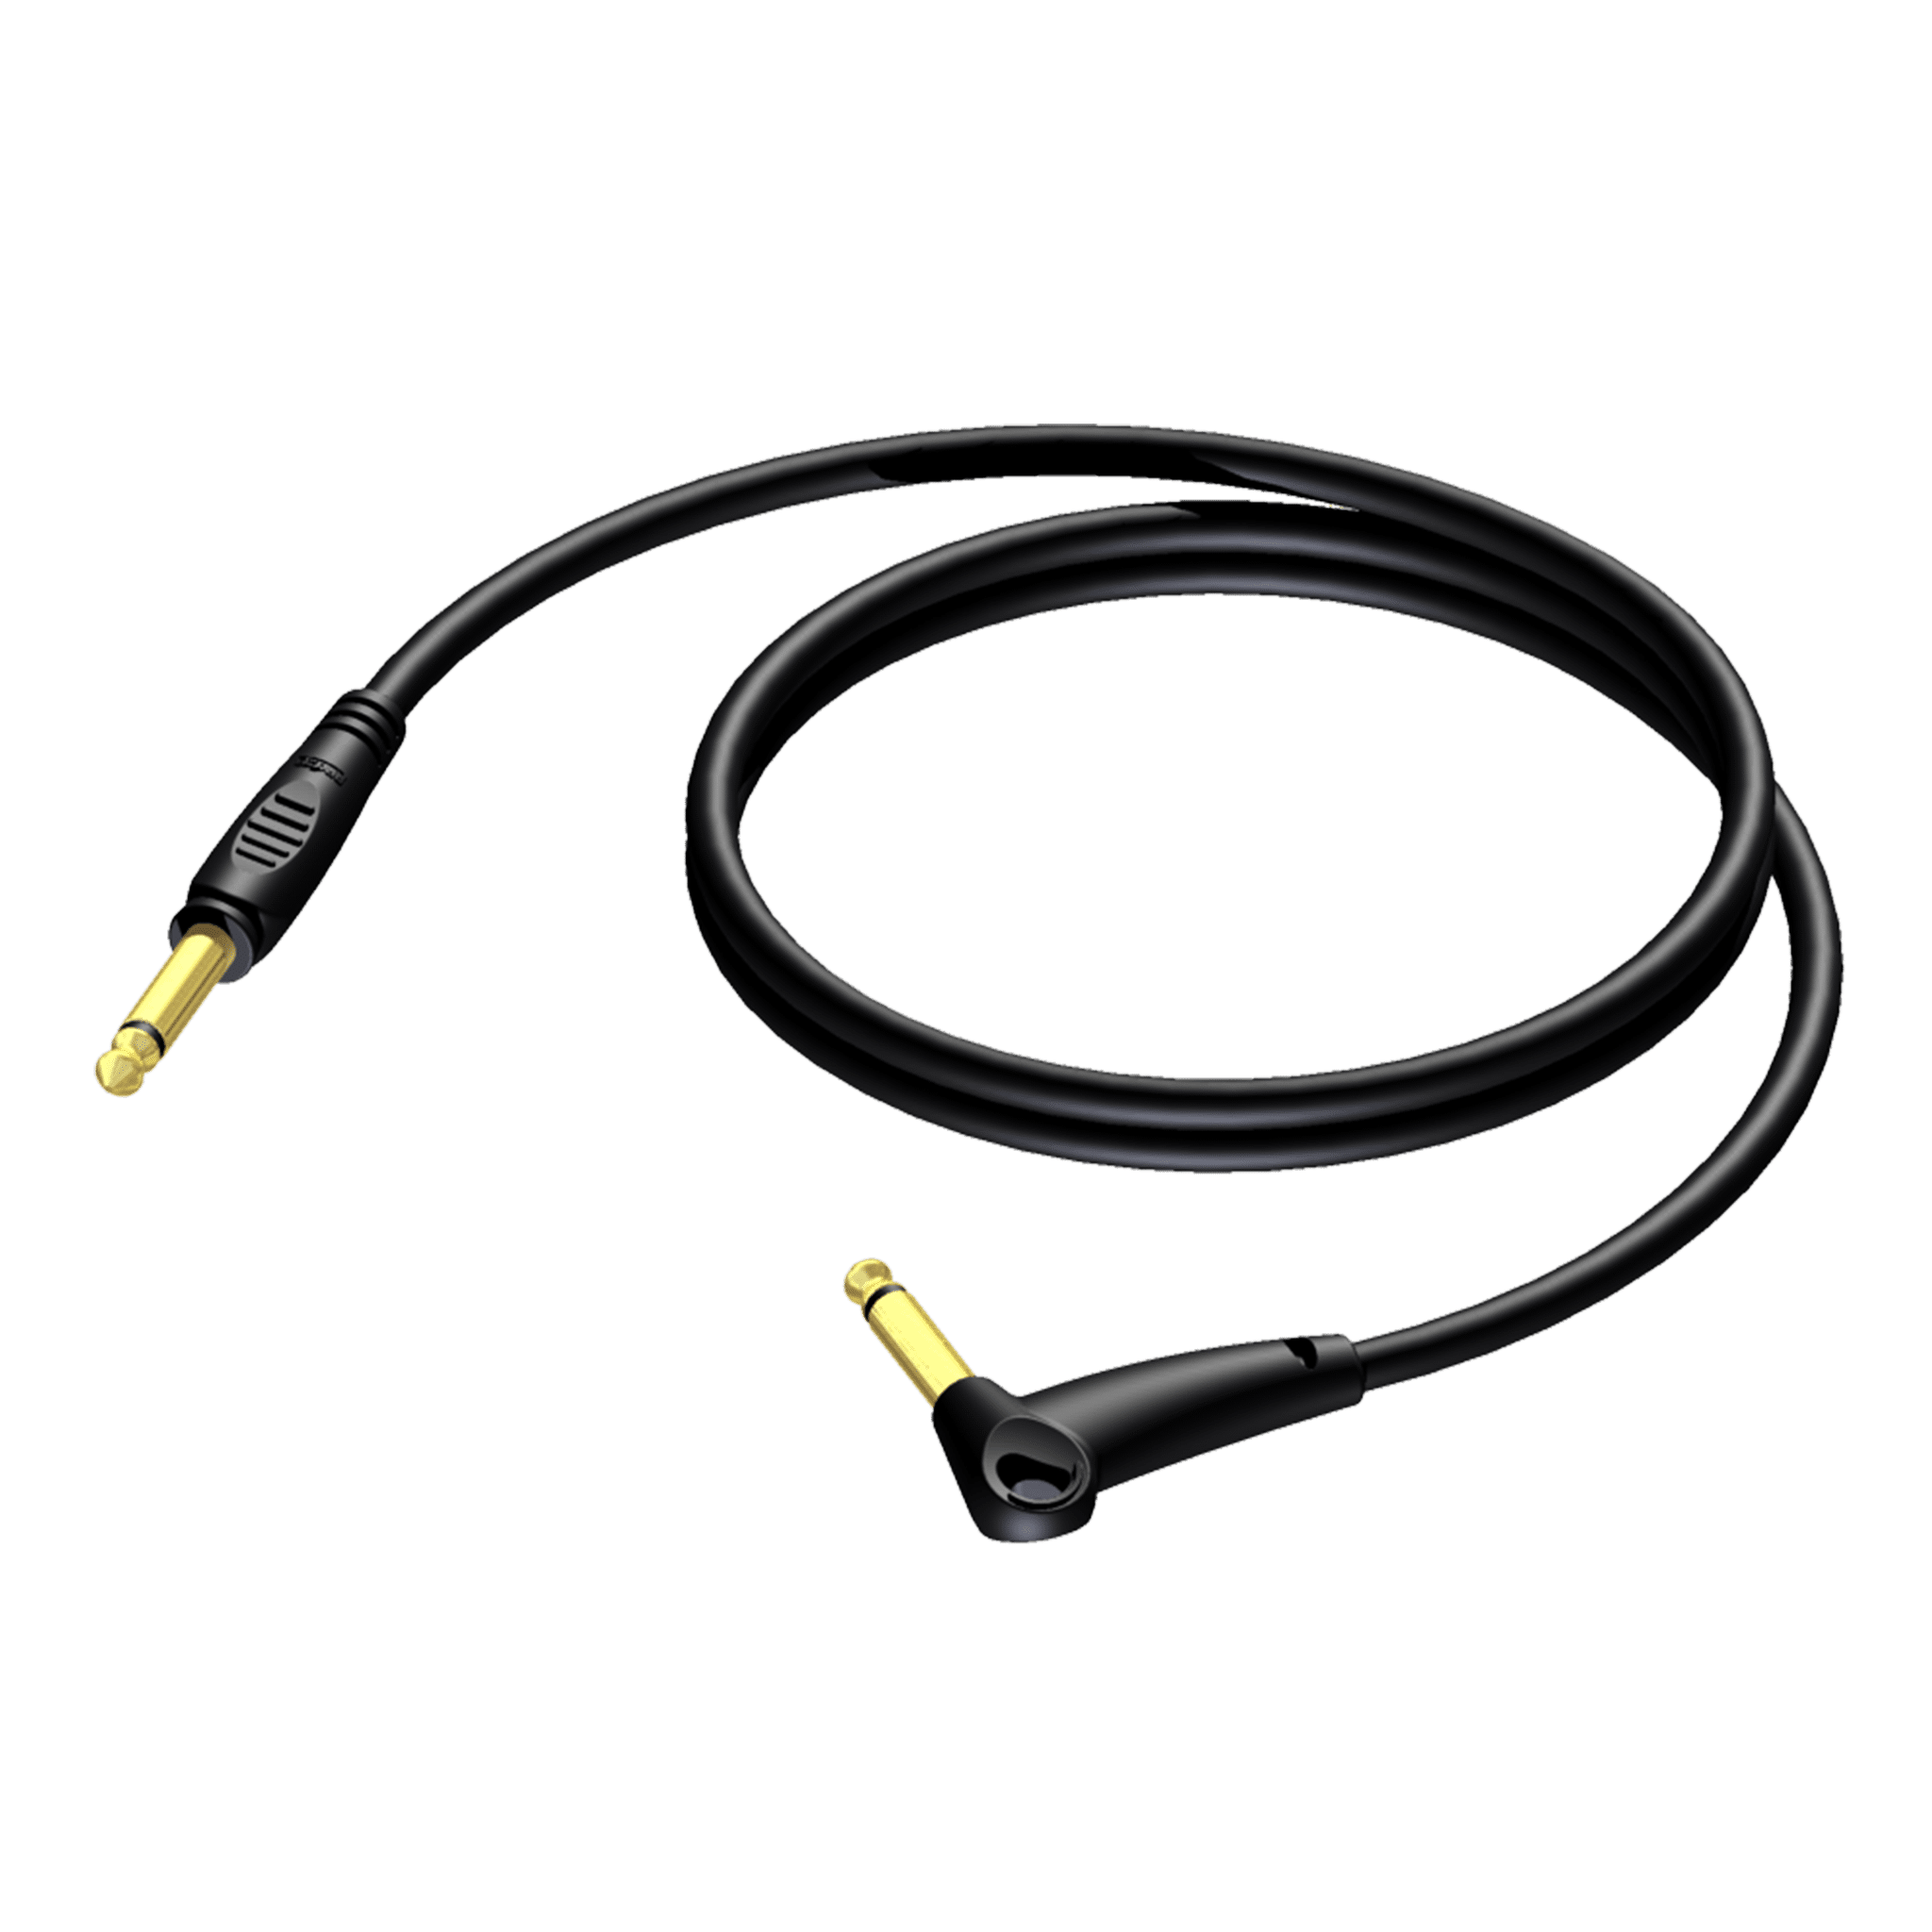 REF650 - 6.3 mm Jack male mono - 6.3 mm Jack male mono - for guitar